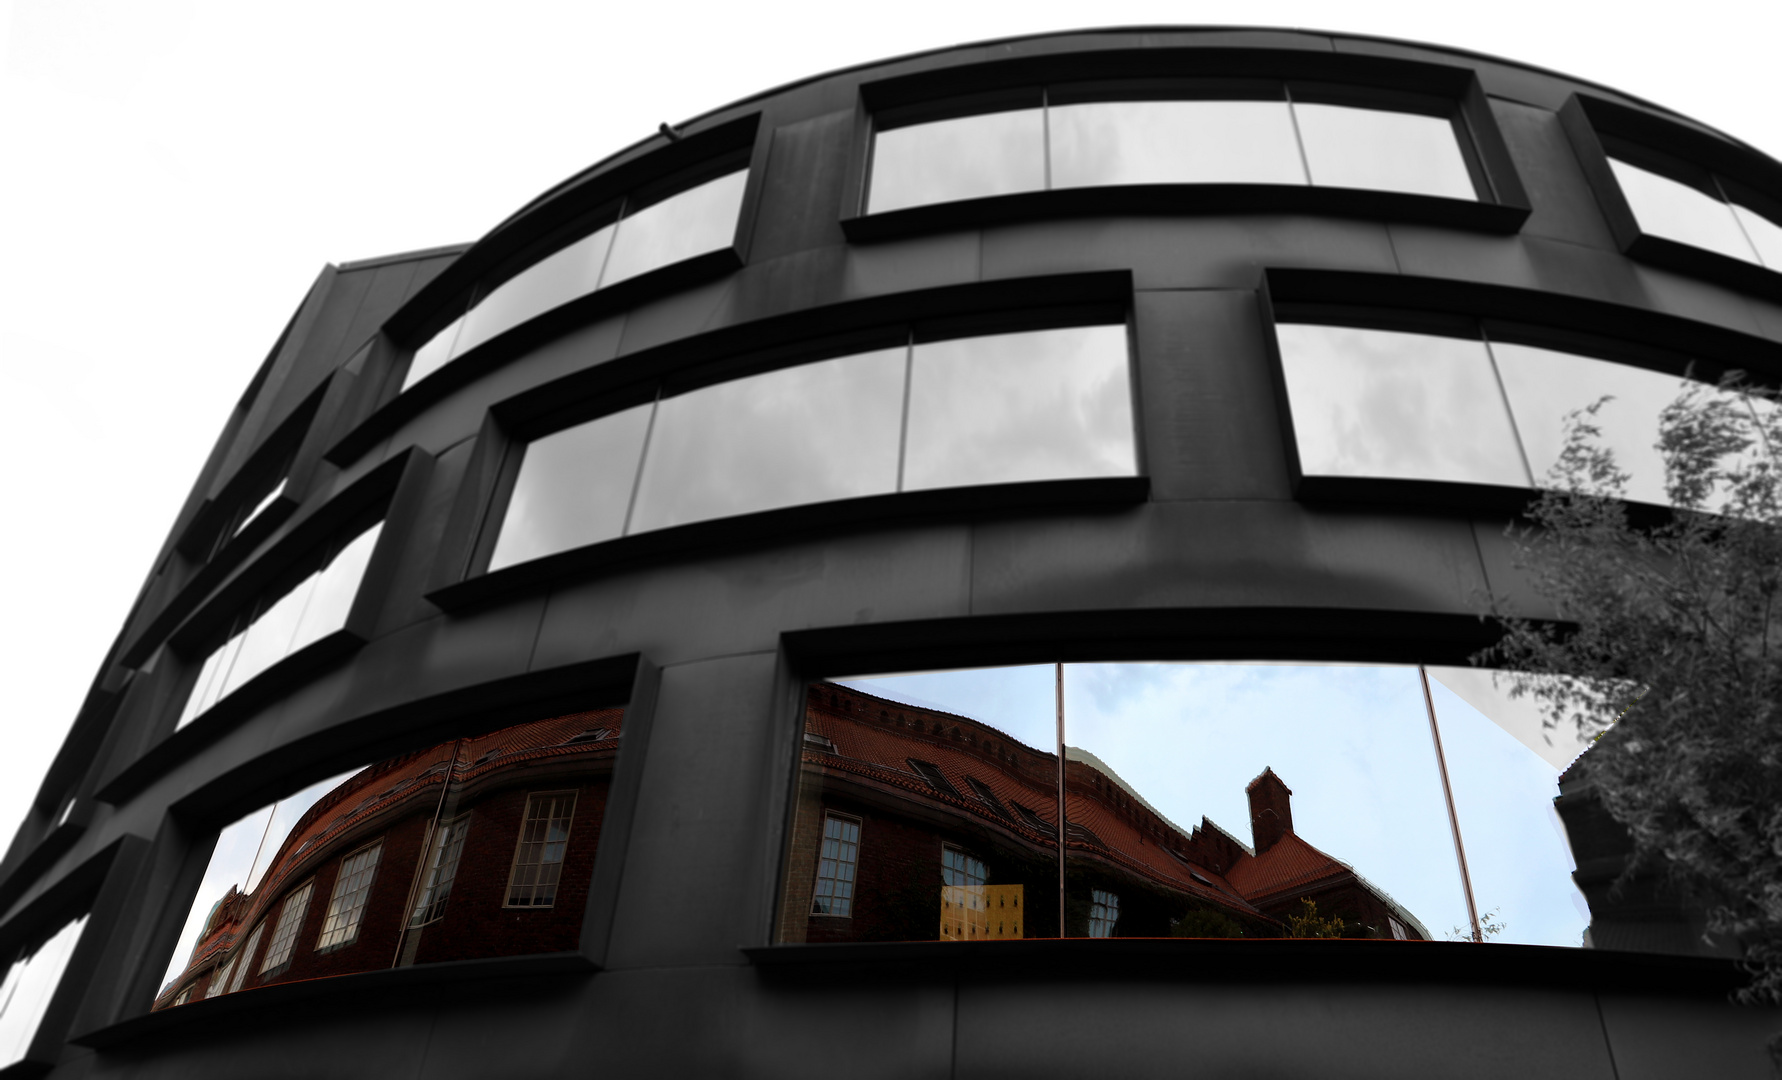 KTH Royal Institute of Technology I